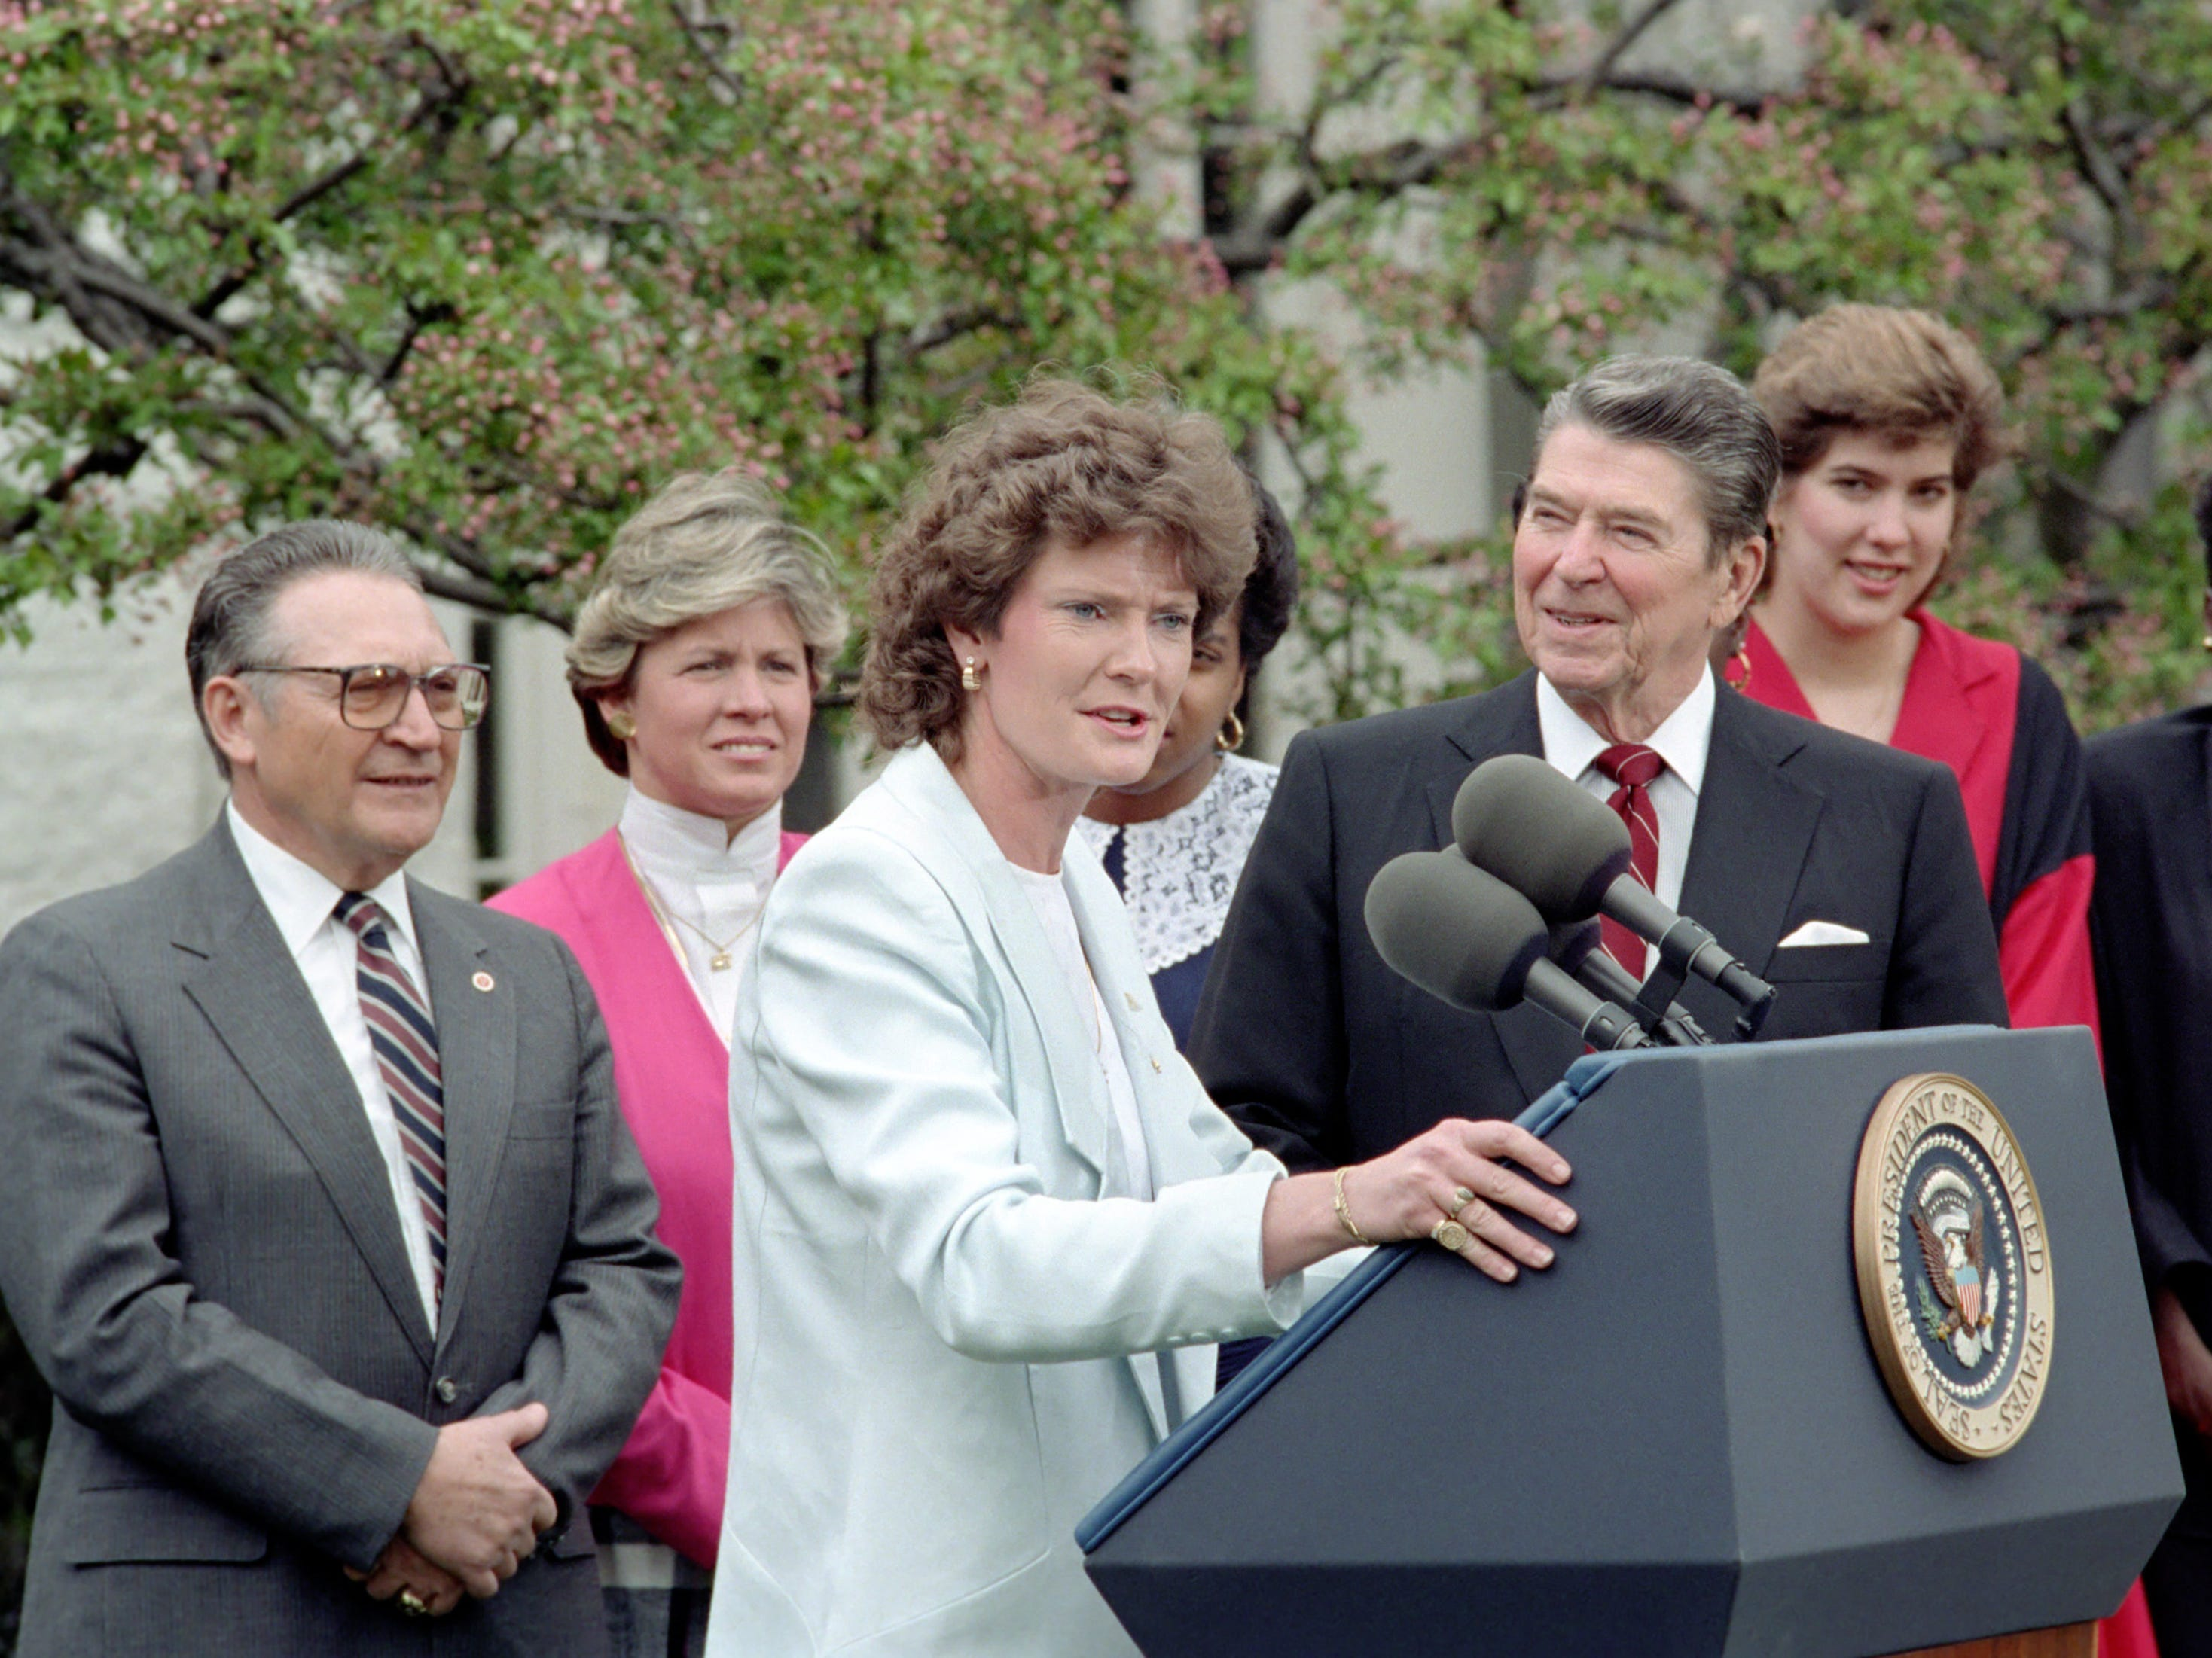 Coach Pat Summitt speaks as President Ronald Reagan hosts the NCAA champion Lady Vols at the White House on April 2, 1987.  Looking on are, from left, UT President Ed Boling, women's athletic director Joan Cronan, Lady Vol Sheila Frost and Lady Vol Melissa McCray.